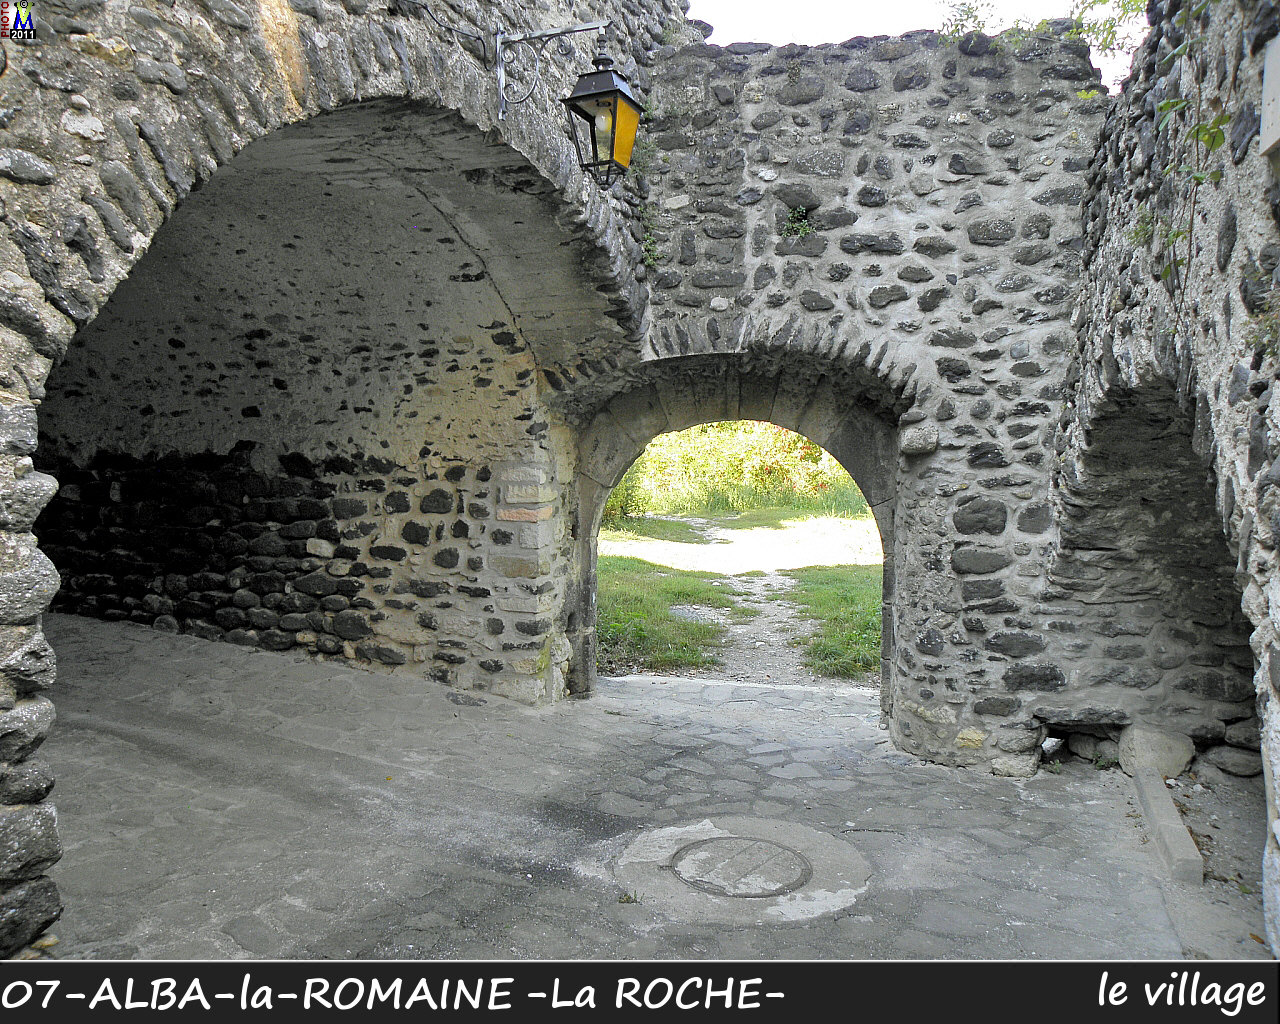 07ALBA-ROMAINEzROCHE_village_116.jpg